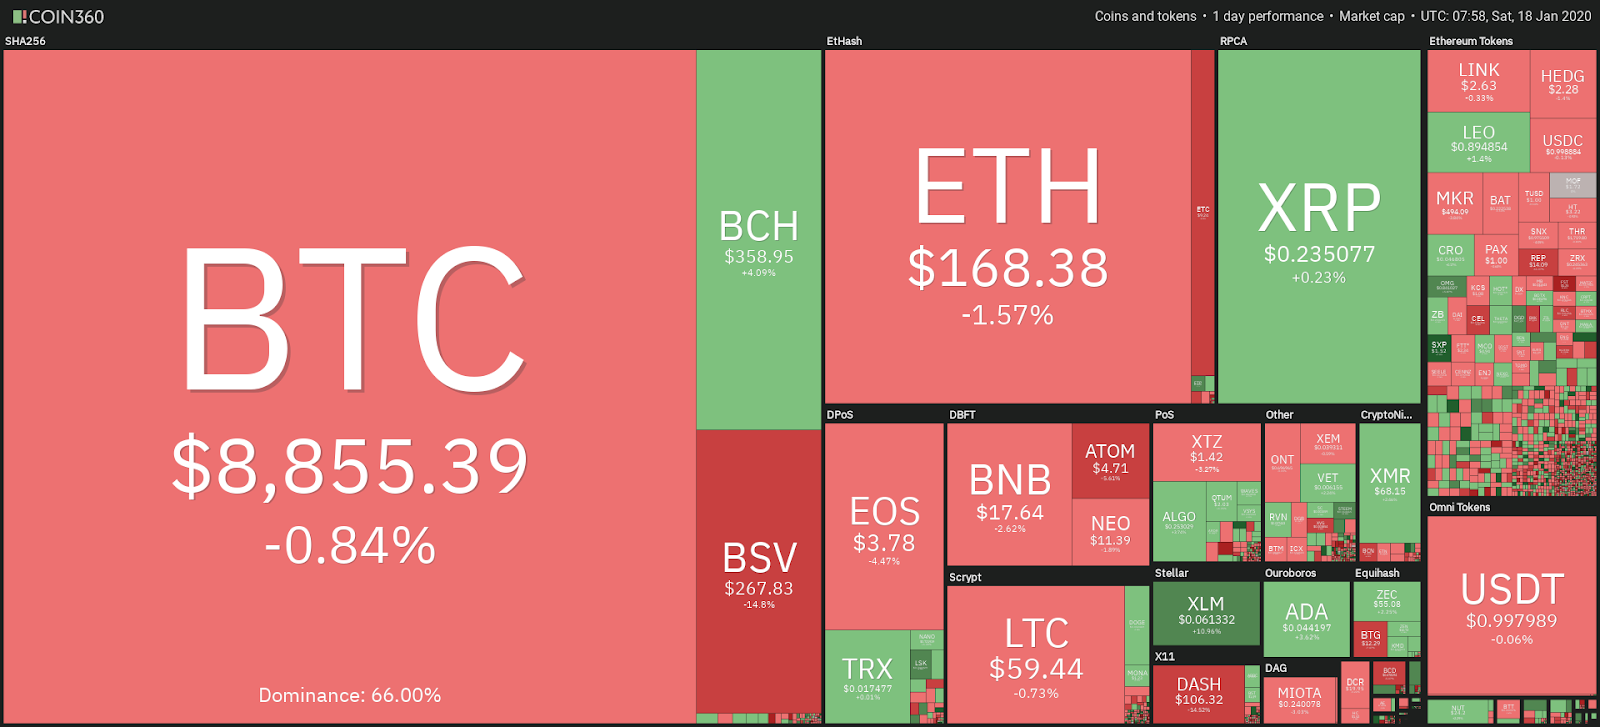 Crypto market data, 1-day performance